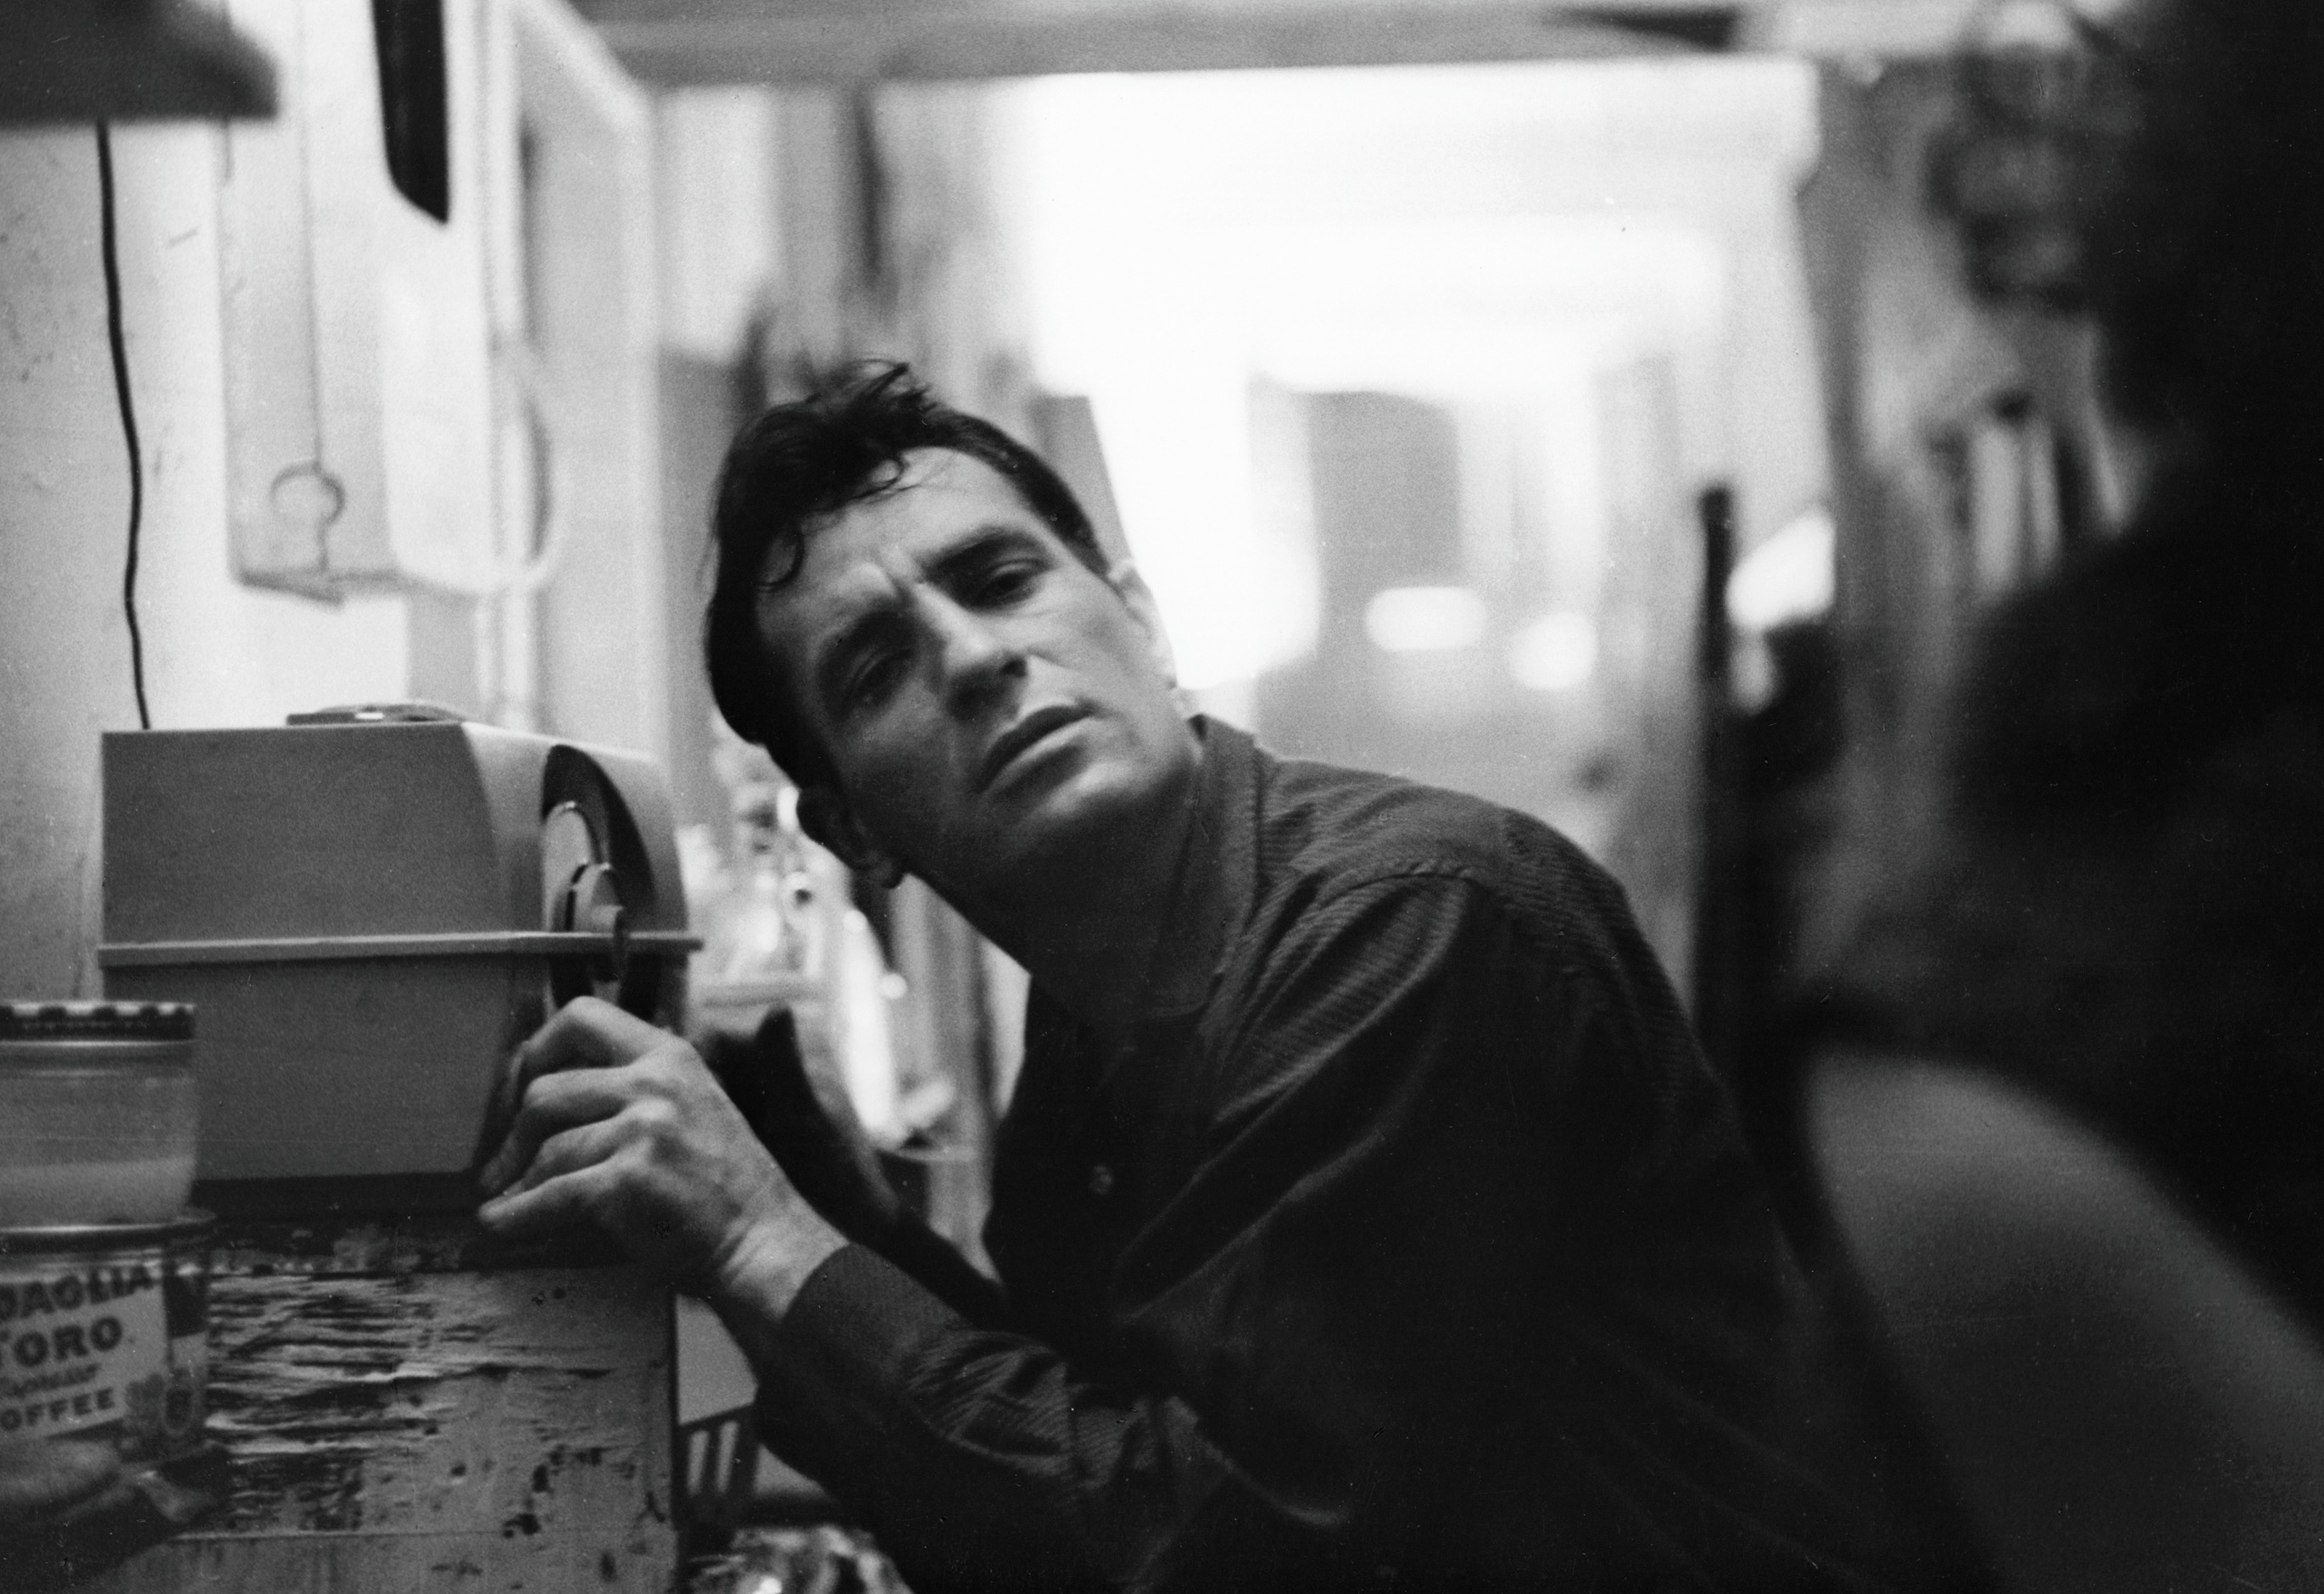 American Beat writer Jack Kerouac (1922 - 1969) leans closer to a radio to hear himself on a broadcast, 1959. (Photo by John Cohen/Getty Images)